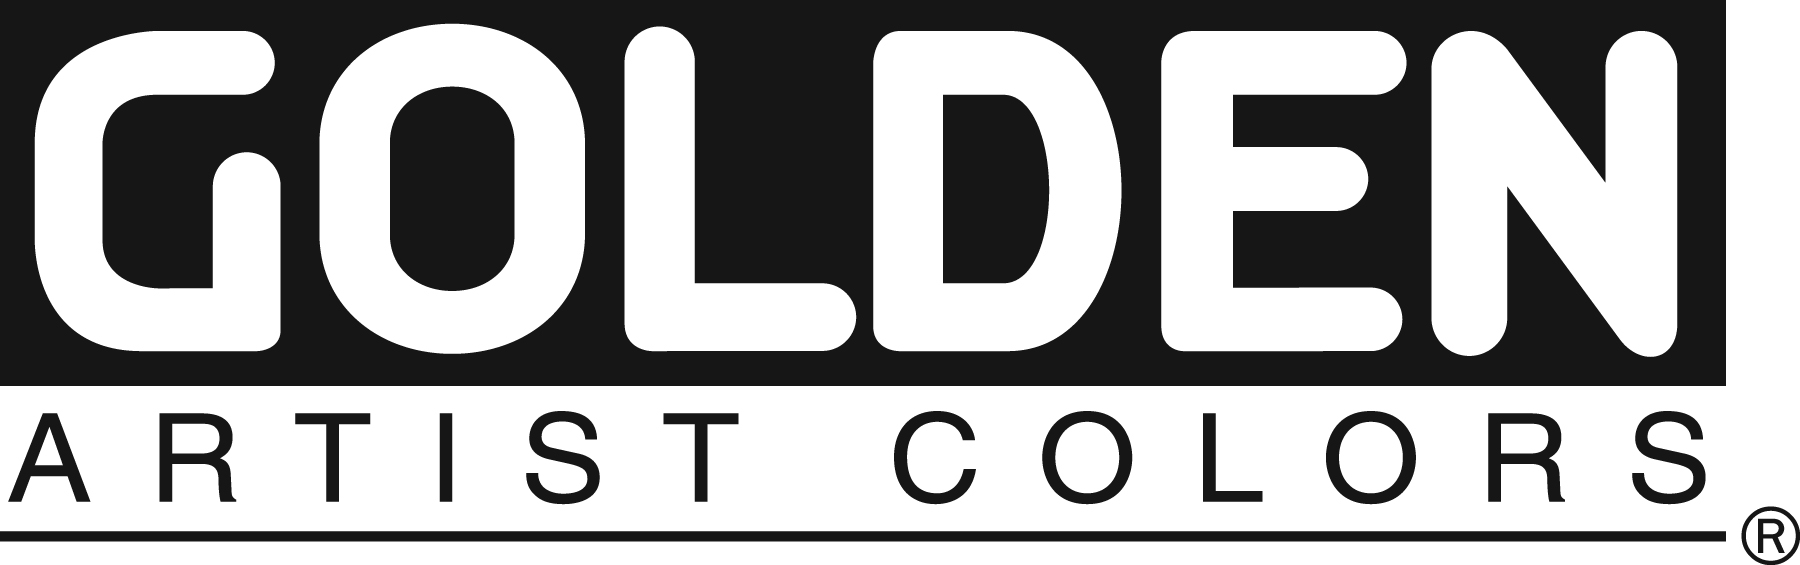 Golden Logo 3-28-17.jpg